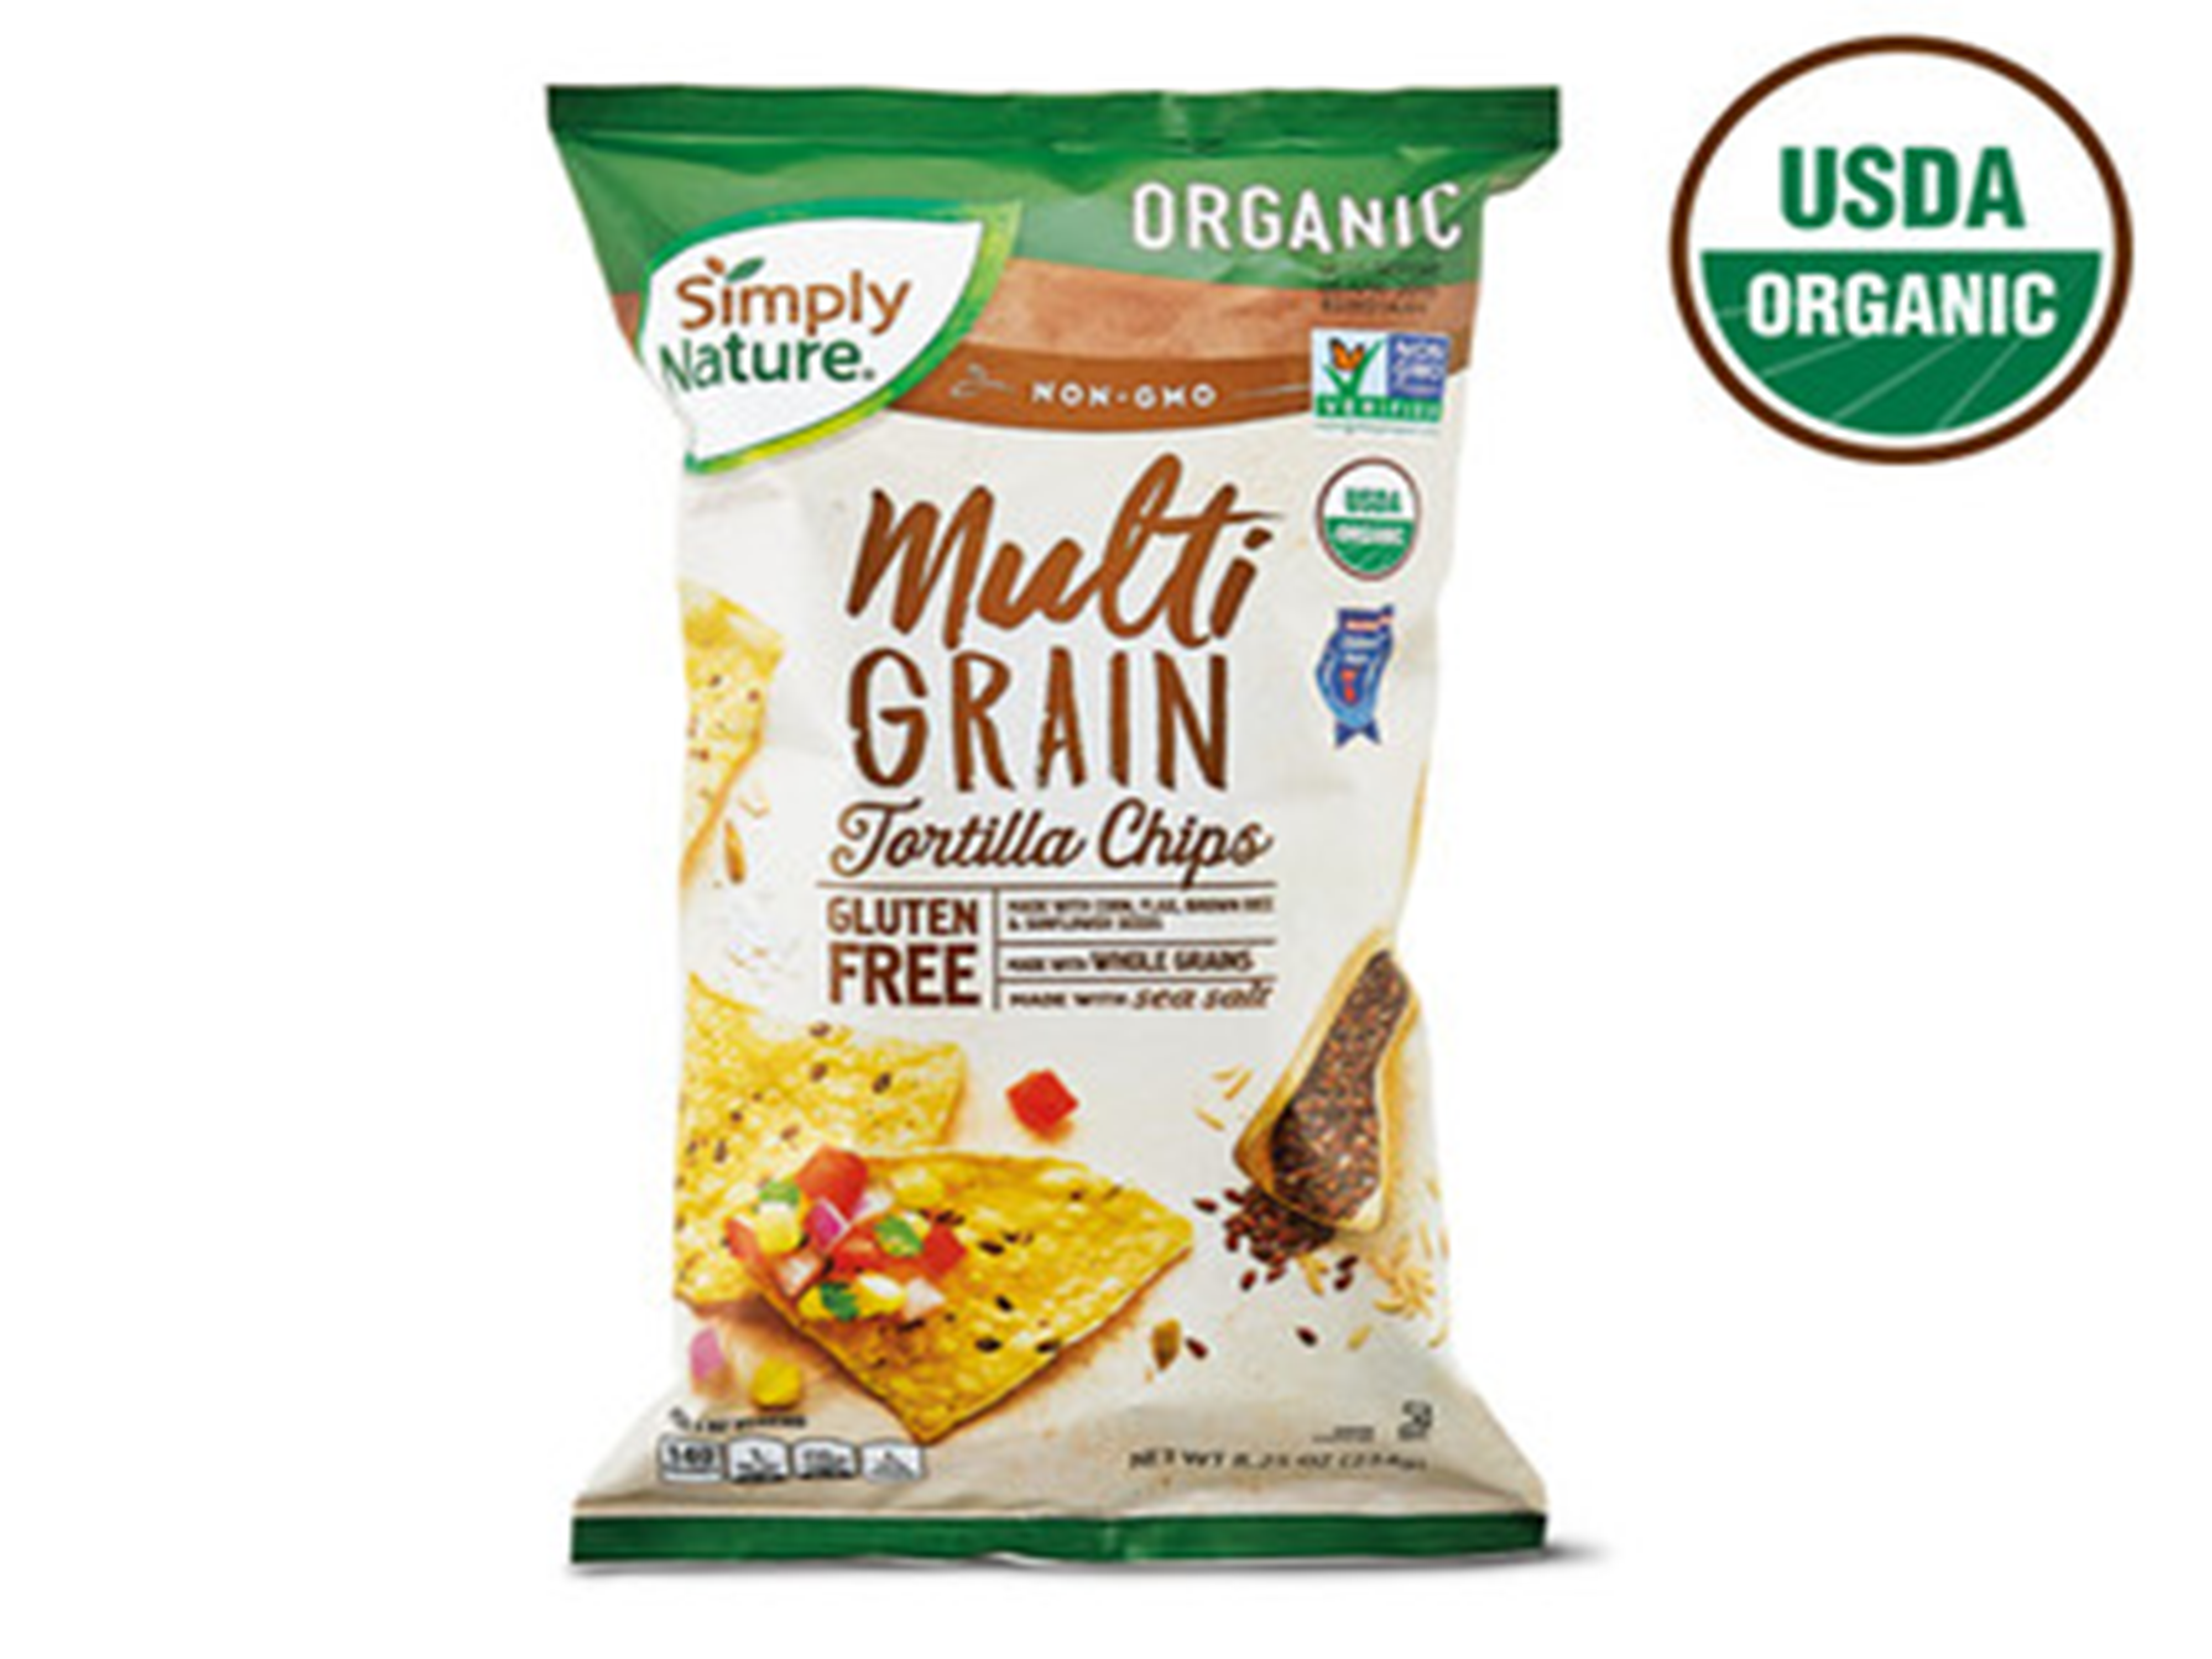 Favorite Snack: Simply Nature Organic Tortilla Chips